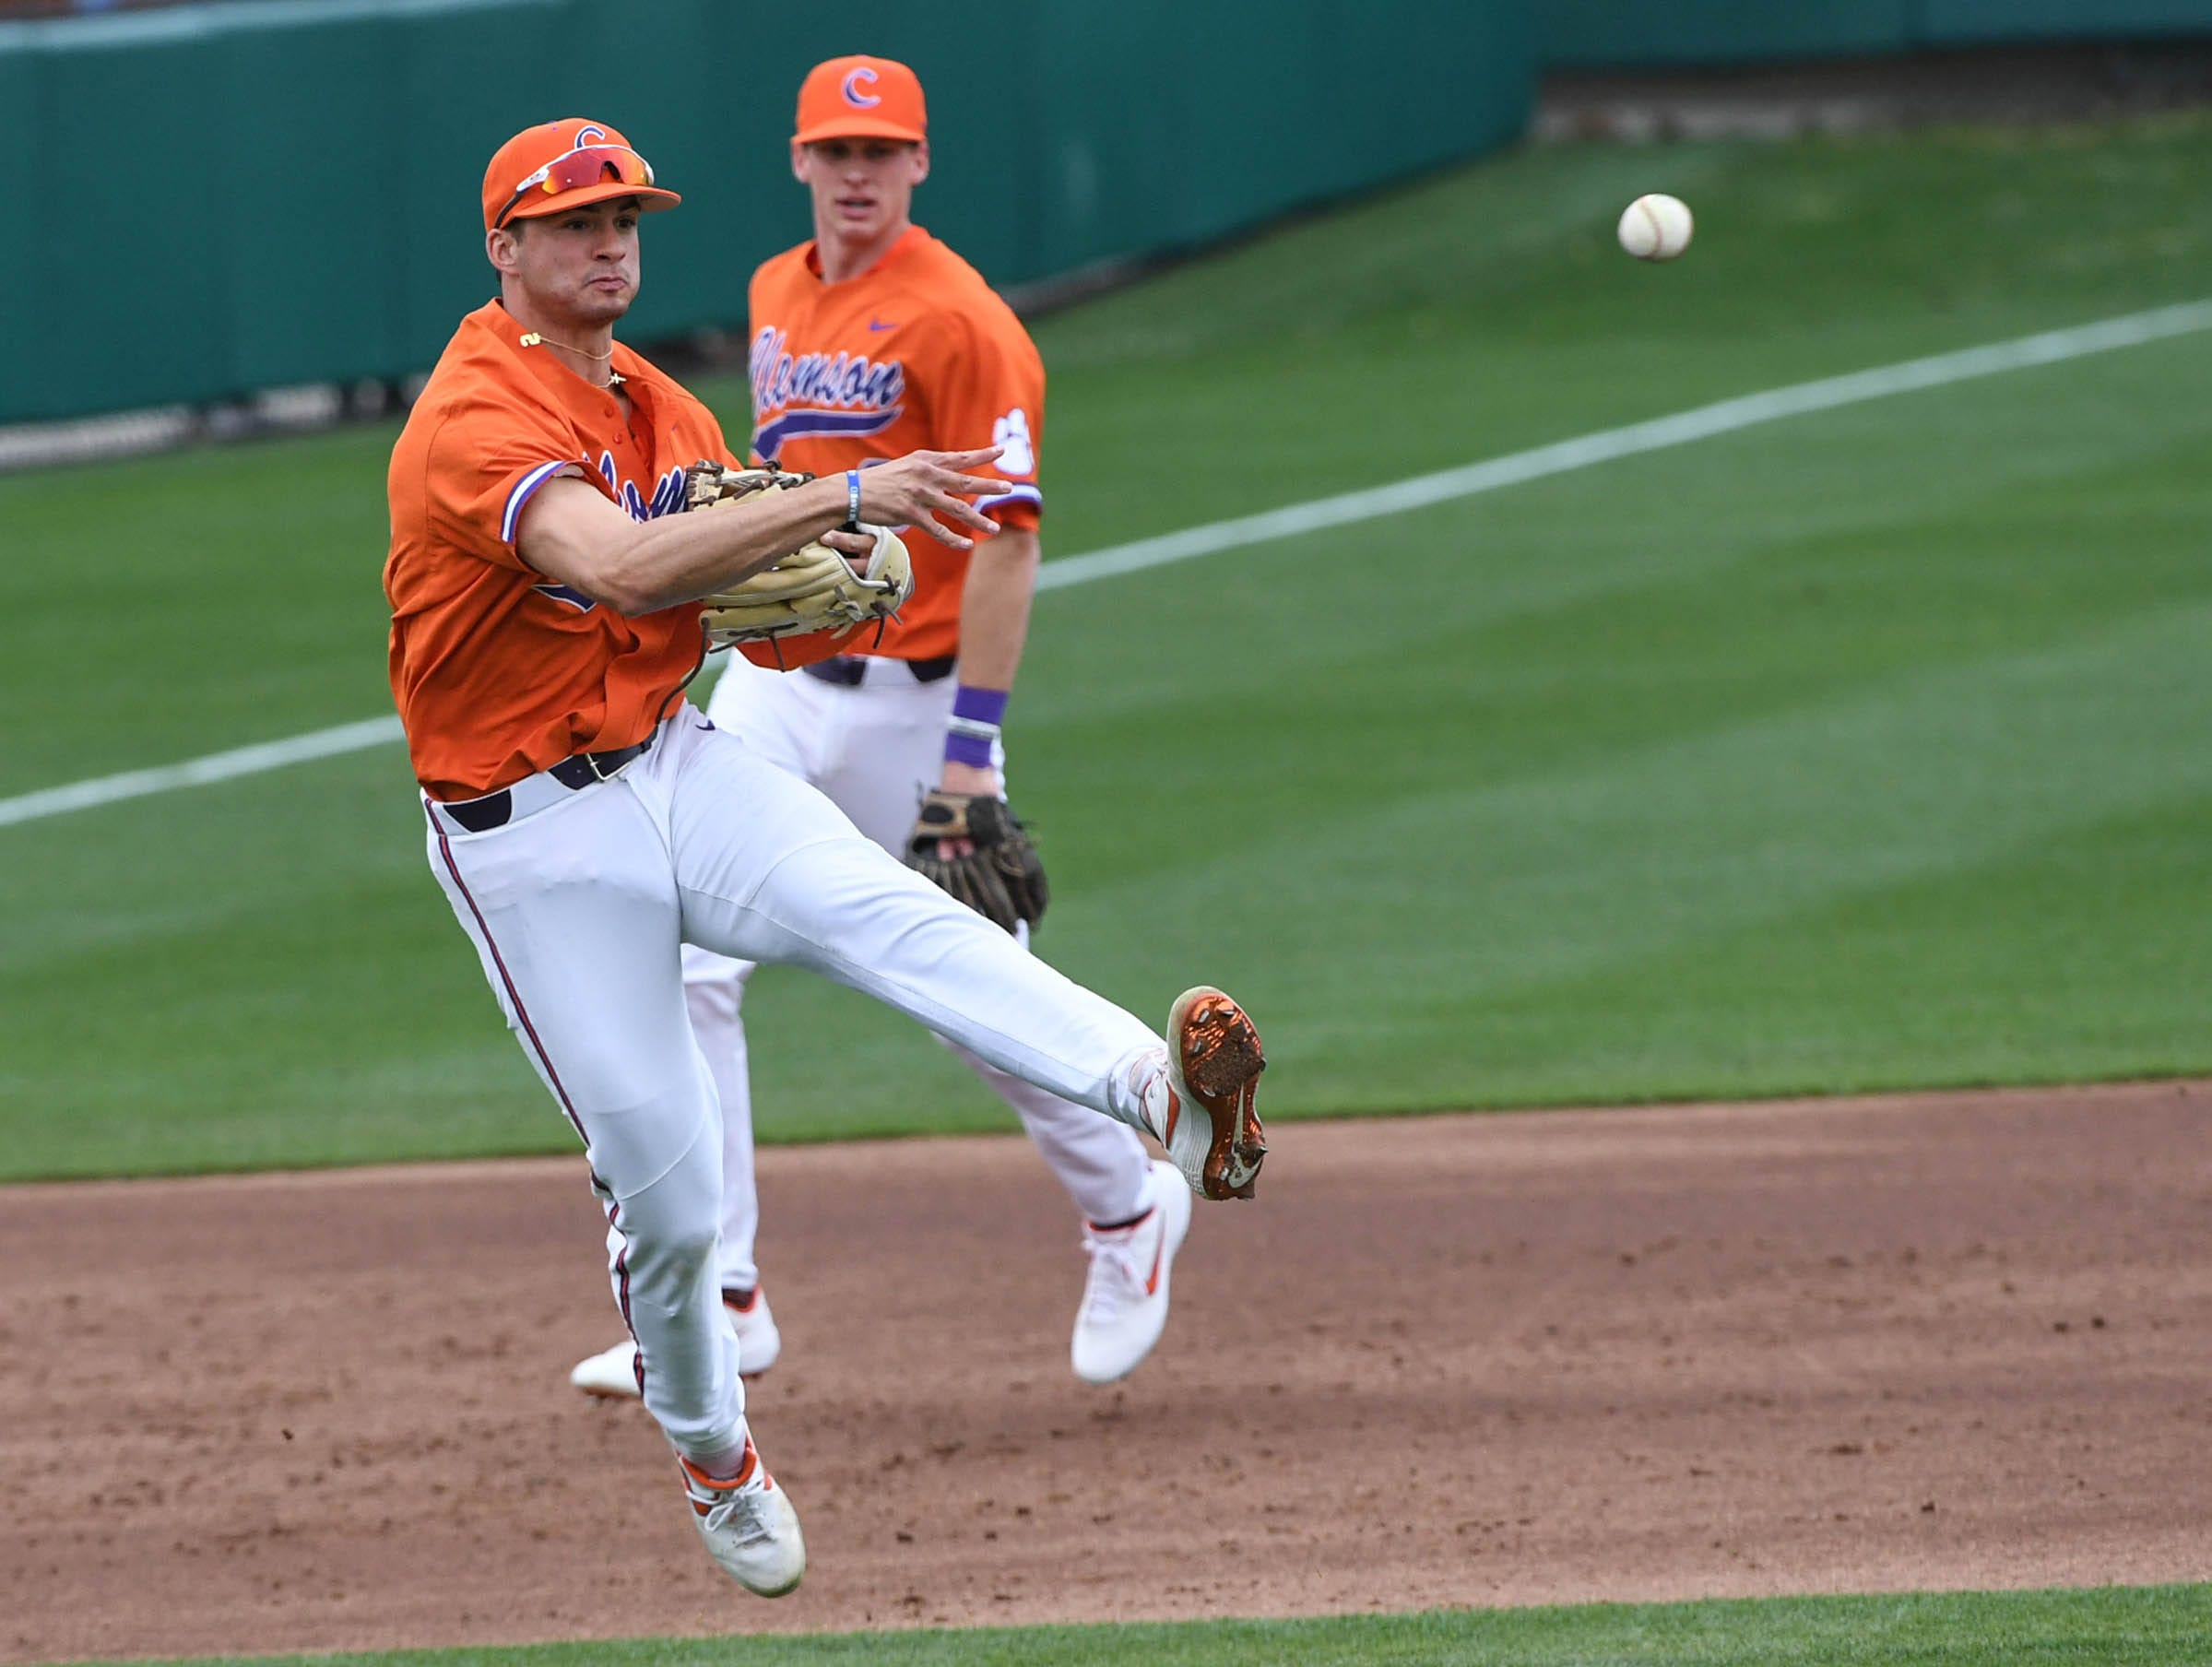 Clemson sophomore Sam Hall(5) throws to first base against South Alabama during the top of the fourth inning at Doug Kingsmore Stadium in Clemson Friday, February 15, 2019.